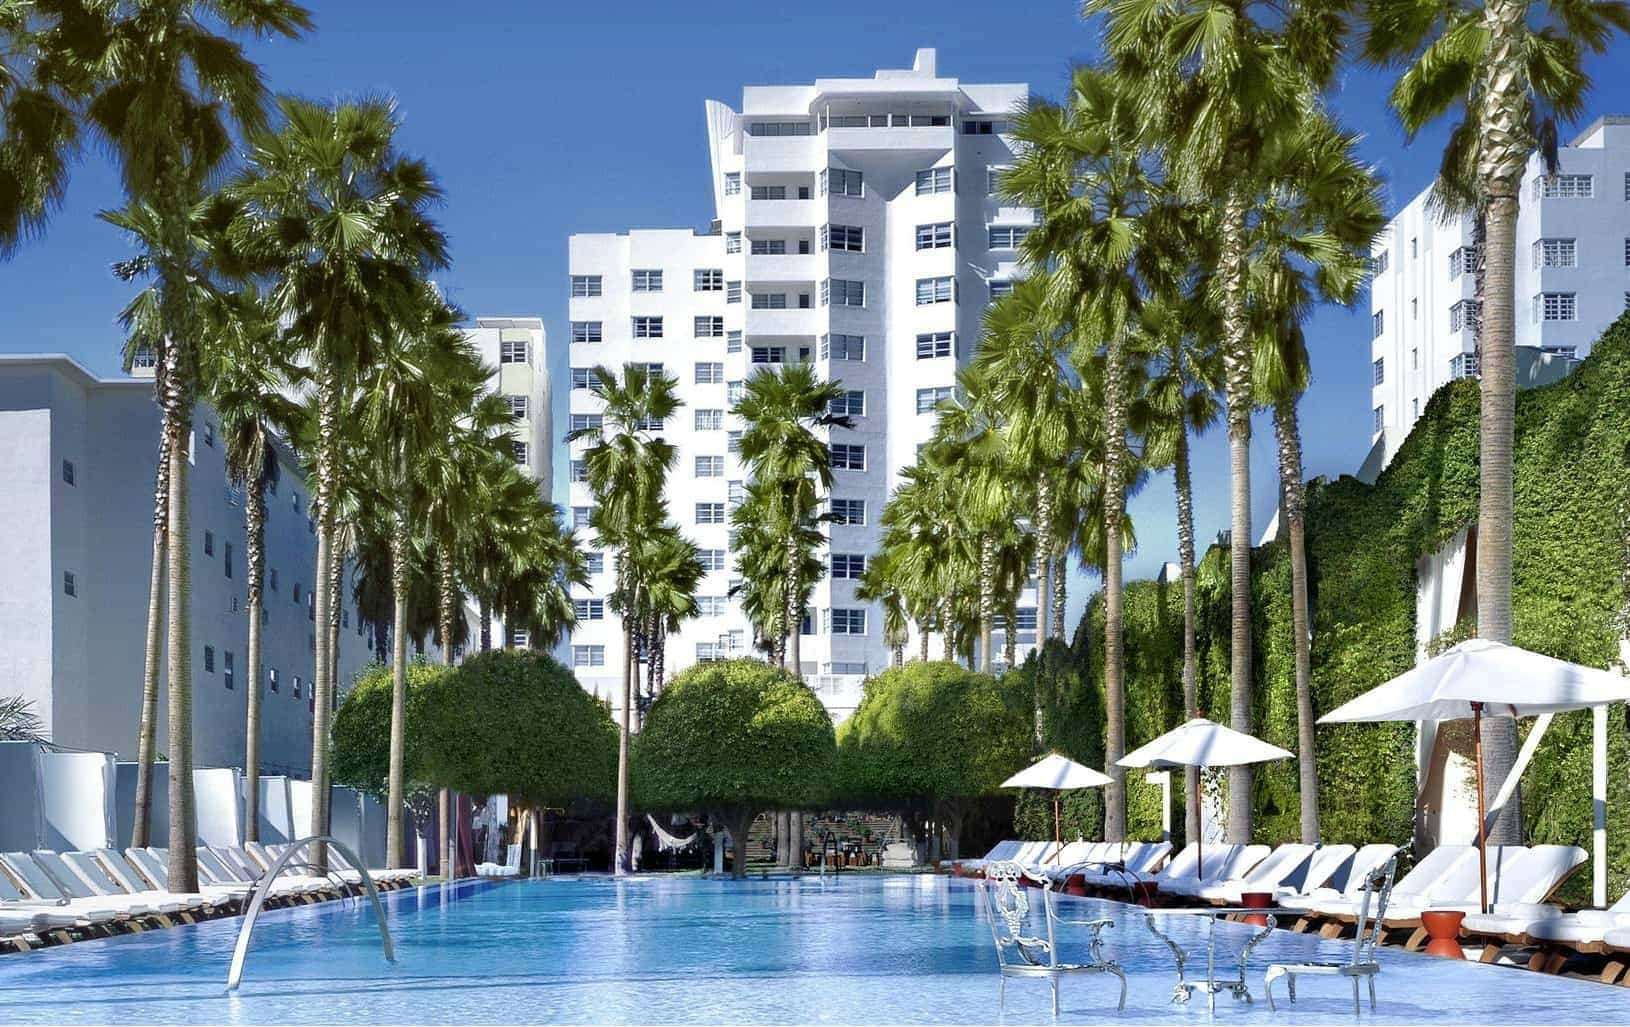 Delano Miami Beach Hotel Reviews 2018 - Miami Beach Advisor